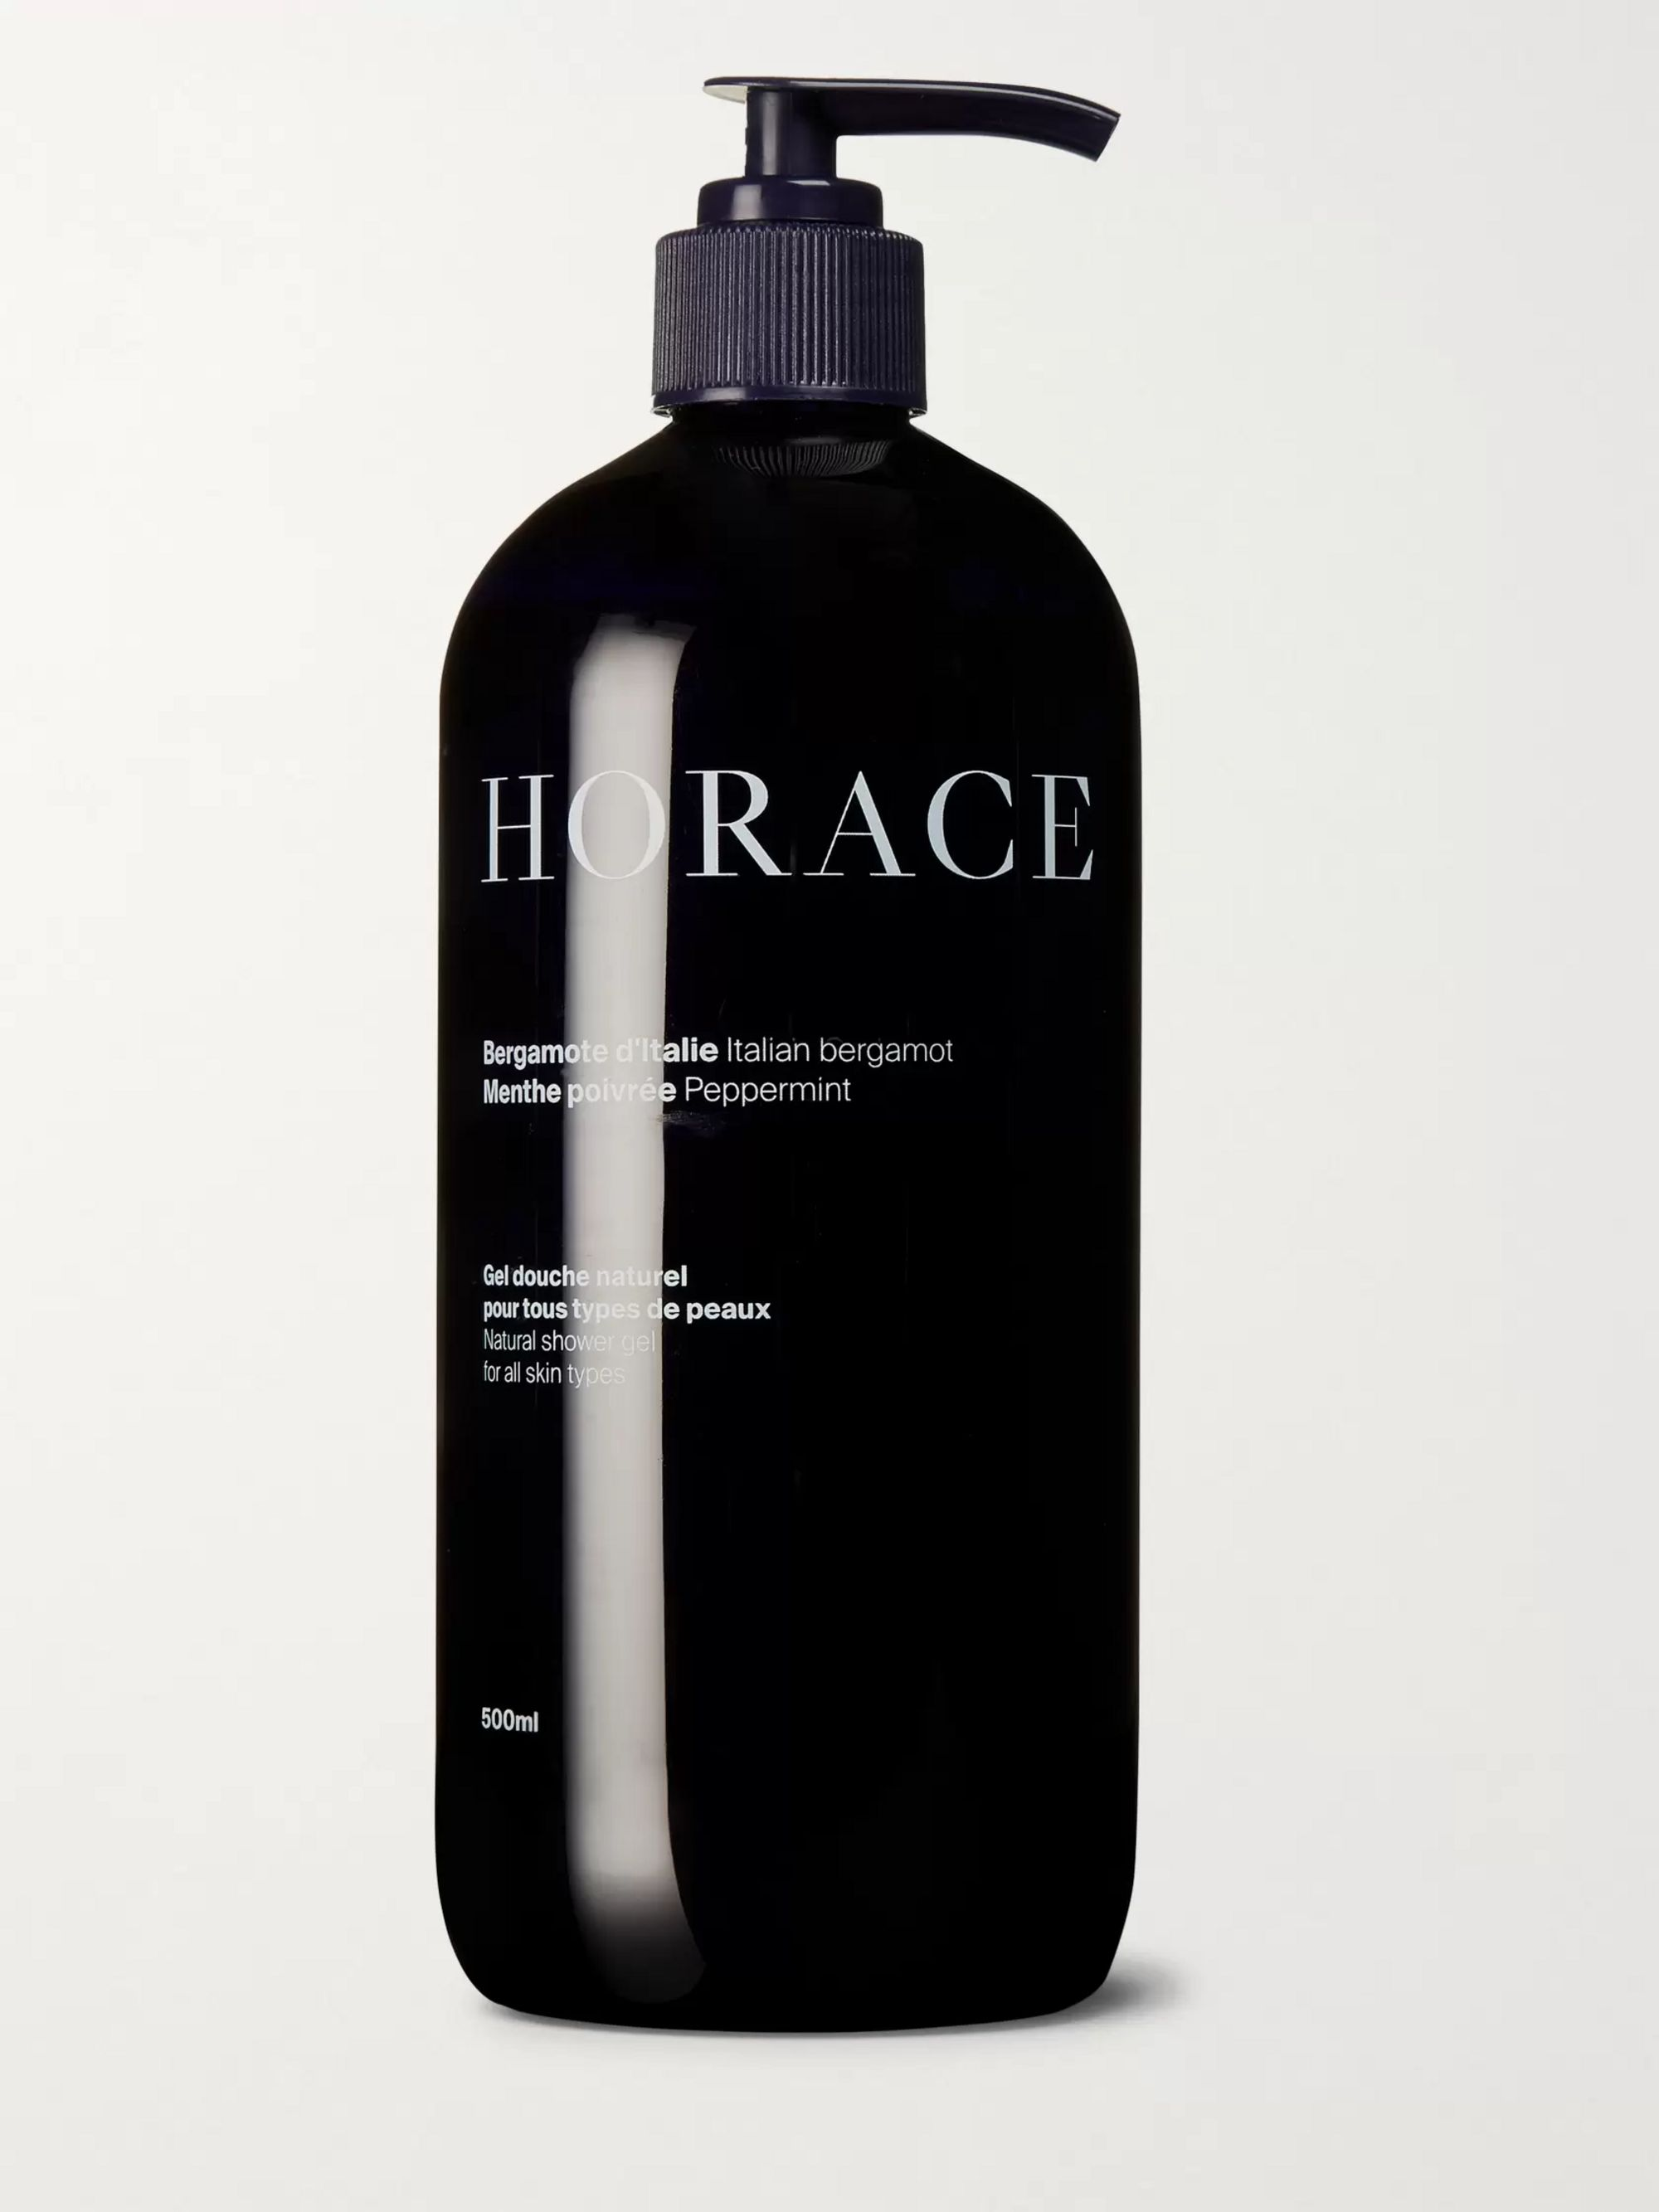 HORACE Shower Gel - Italian Bergamot and Peppermint, 500ml